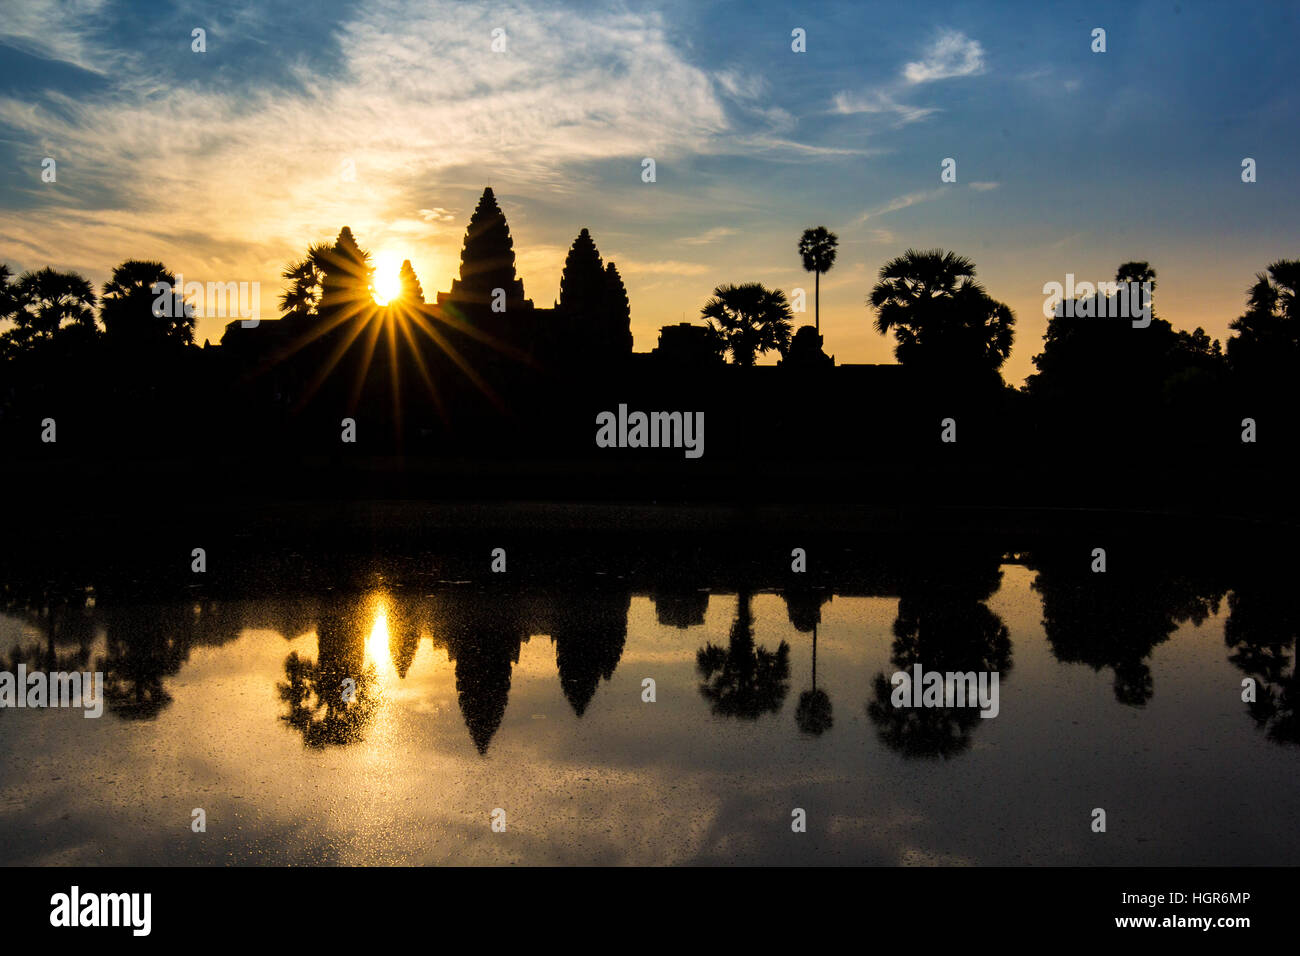 Angkor Wat temple at dramatic sunrise sunburst reflecting in water - Stock Image